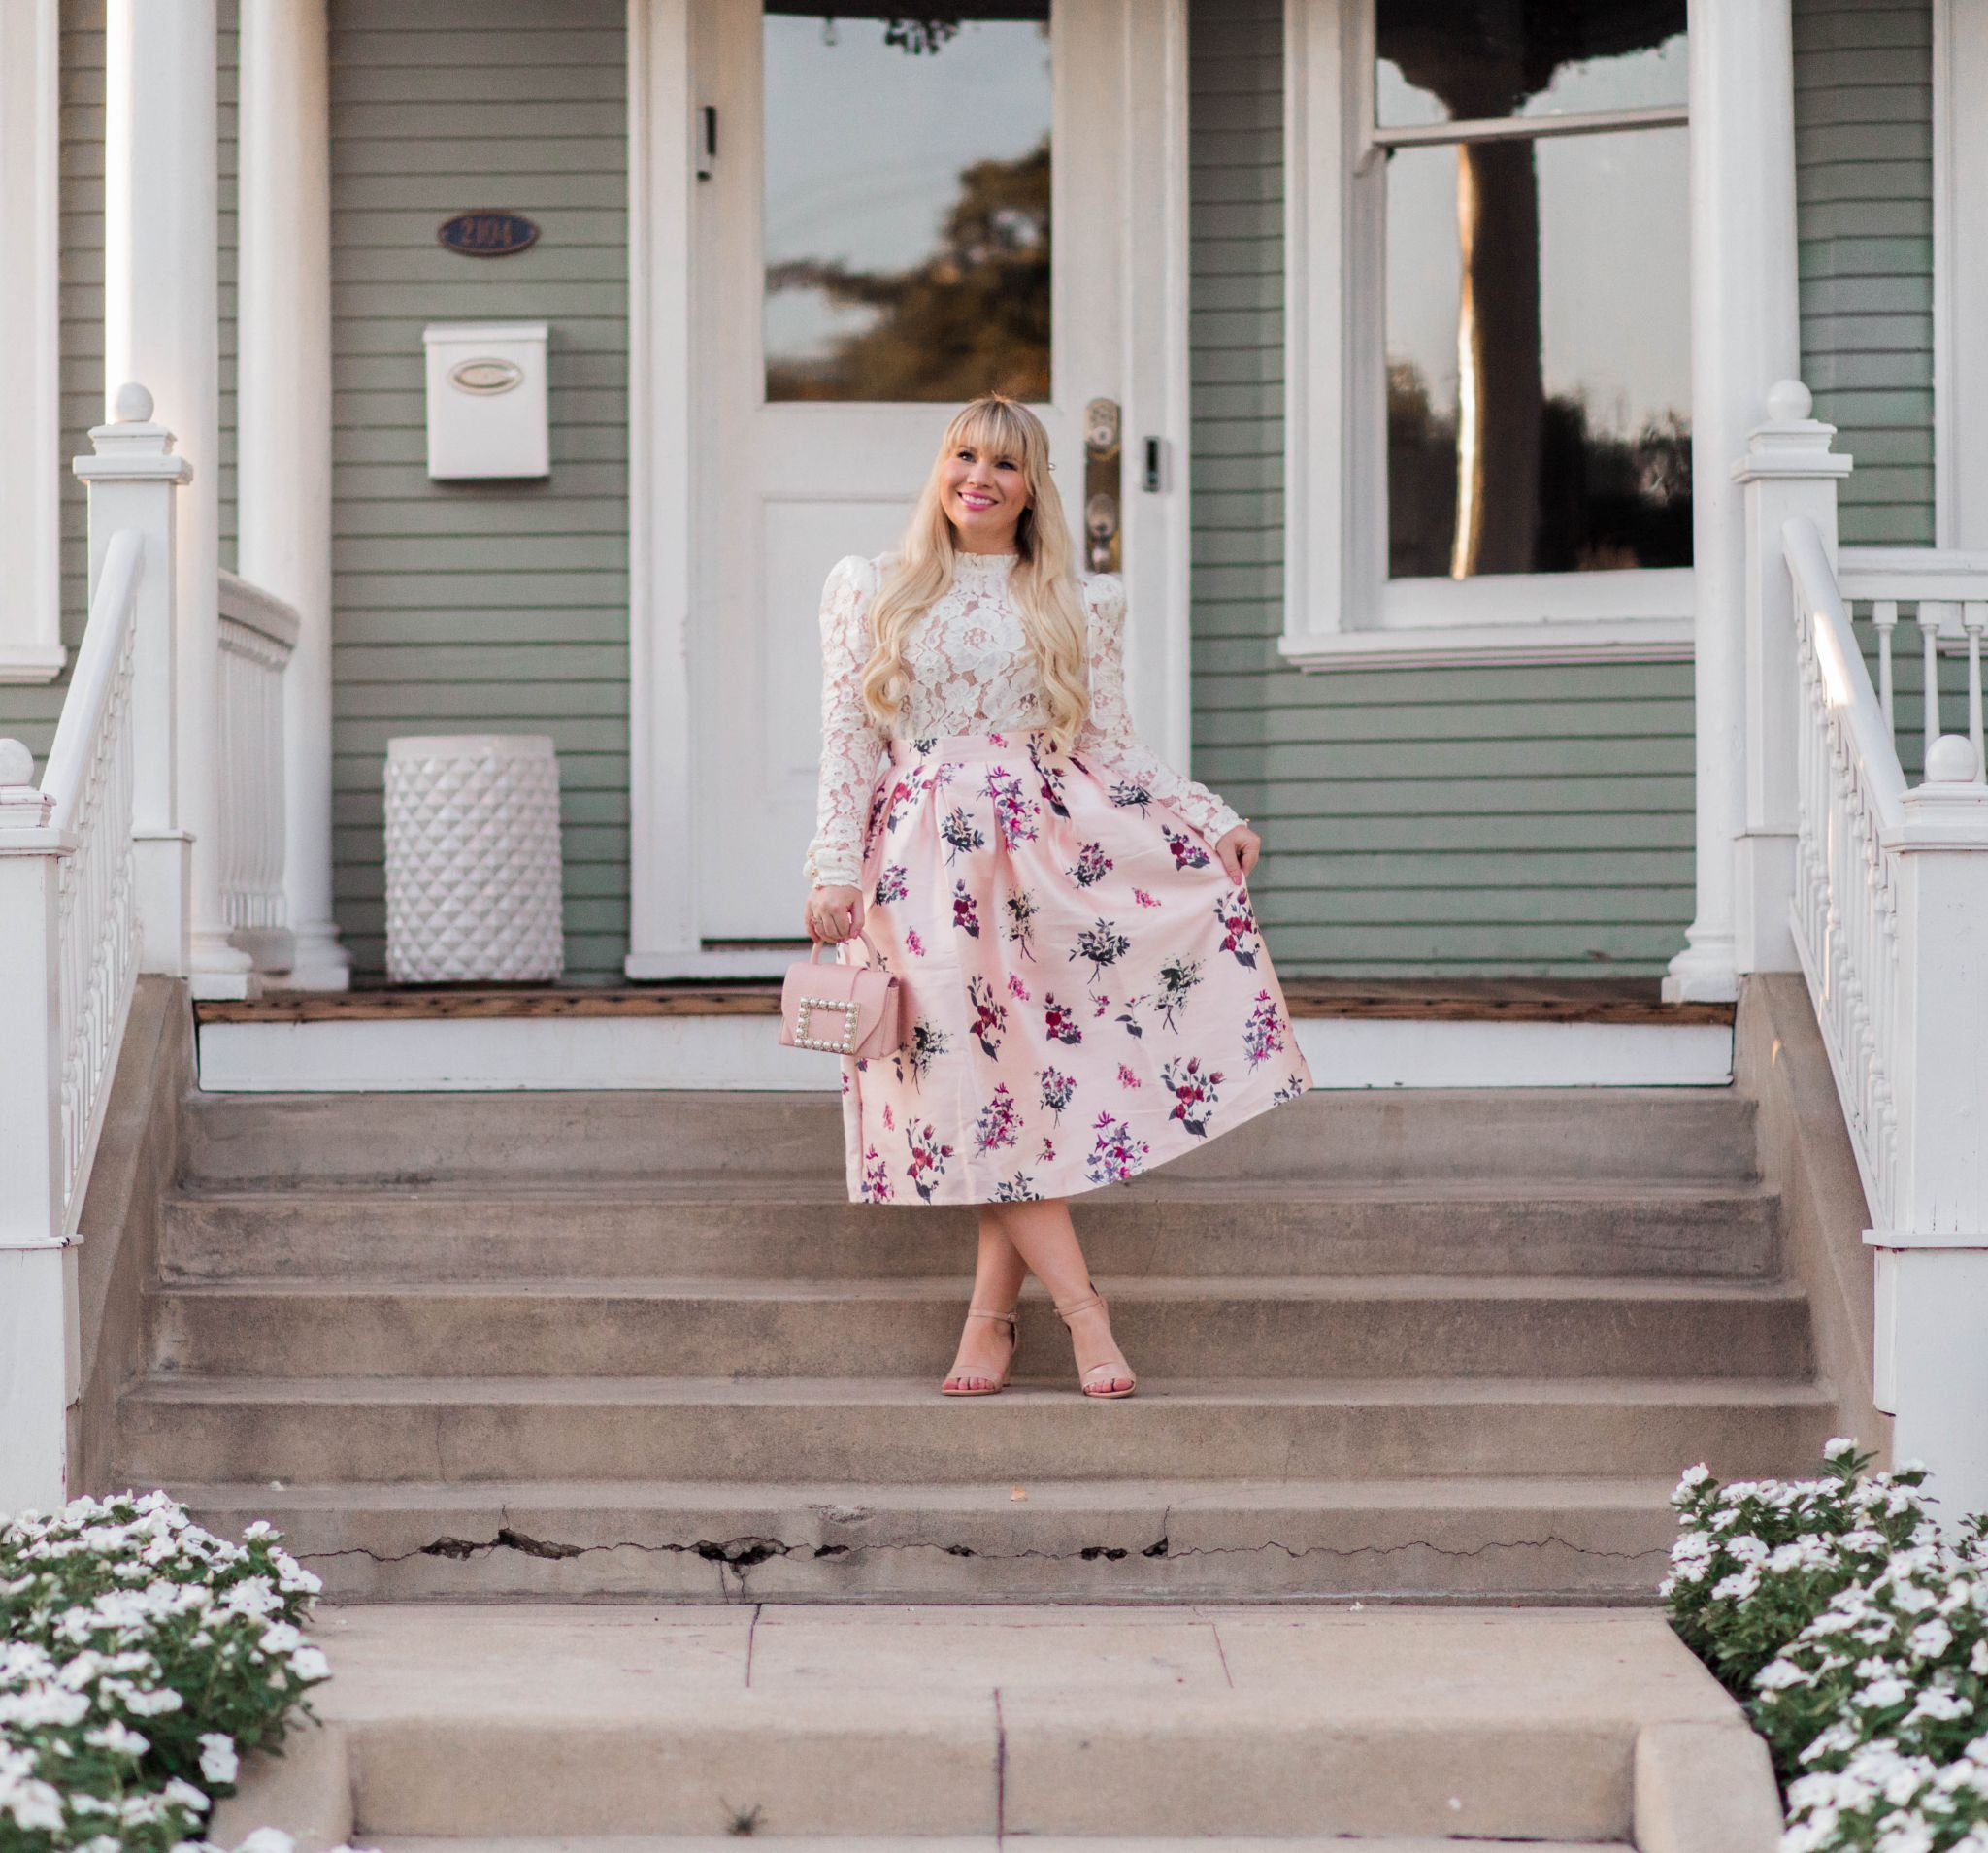 California fashion blogger, Elizabeth Hugen, styles the perfect feminine white lace top with a floral skirt.